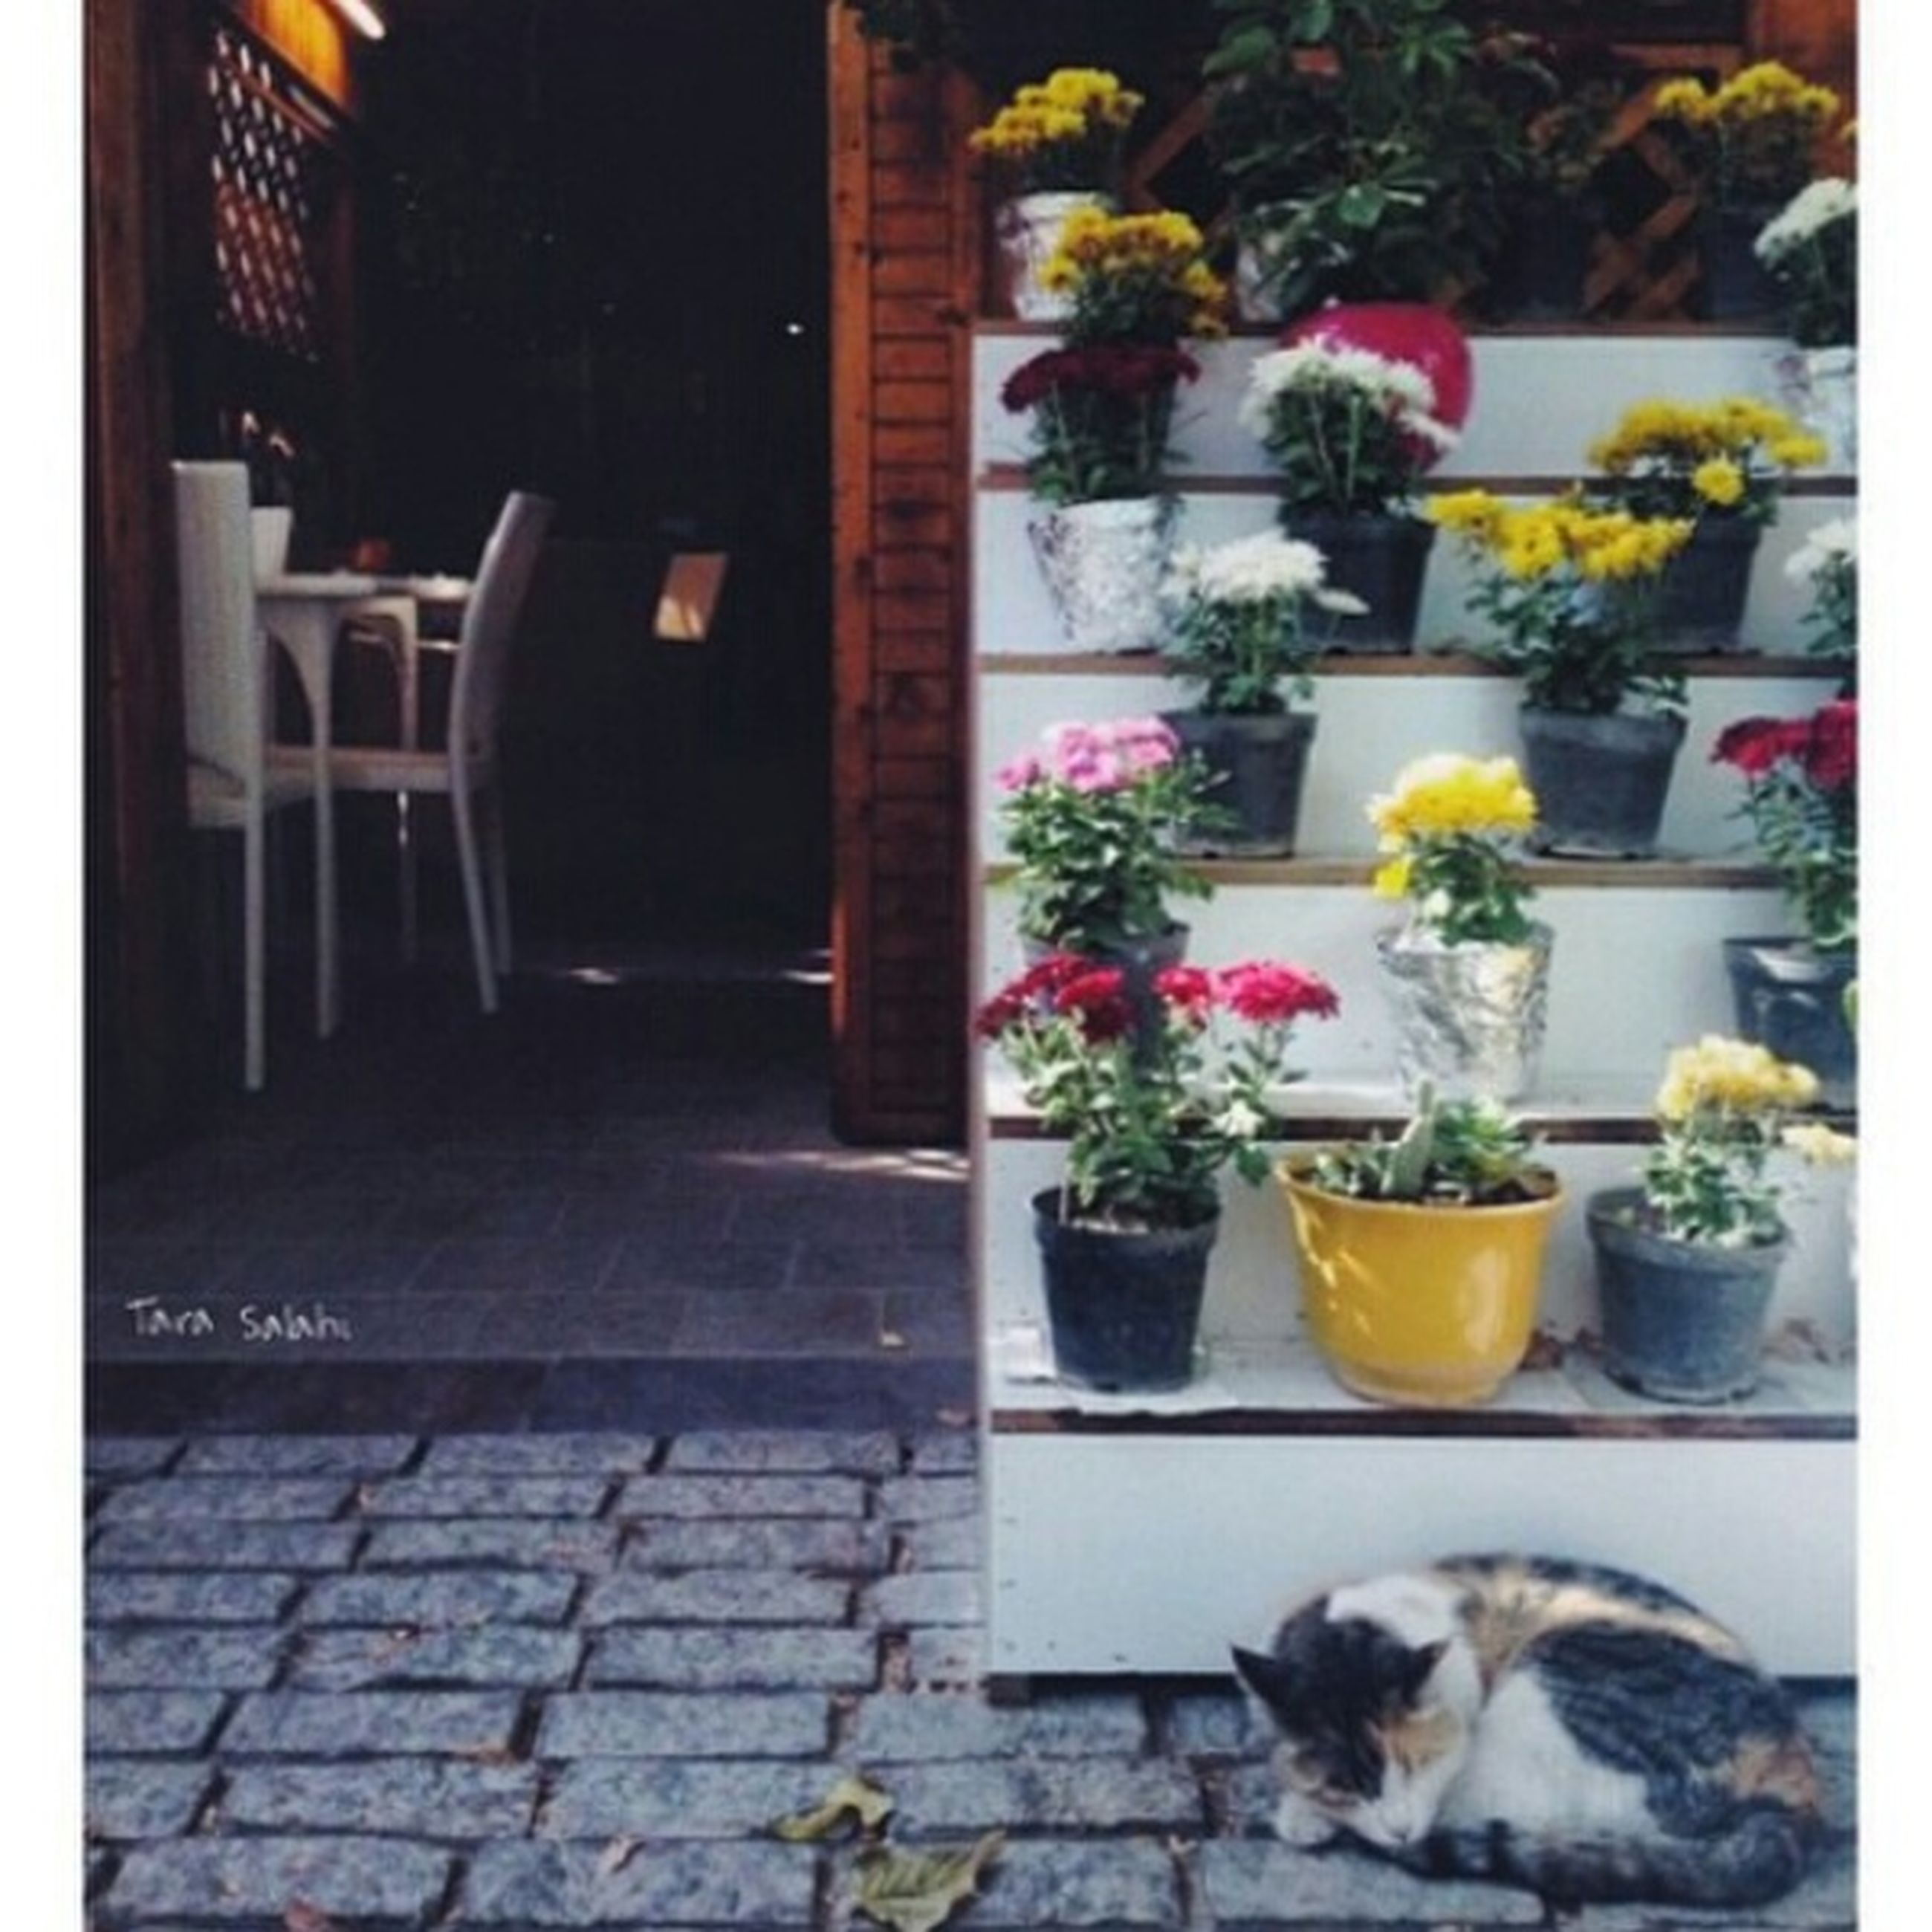 pets, potted plant, domestic animals, domestic cat, animal themes, cat, one animal, built structure, architecture, mammal, building exterior, flower, plant, house, flower pot, window, tiled floor, feline, no people, cobblestone